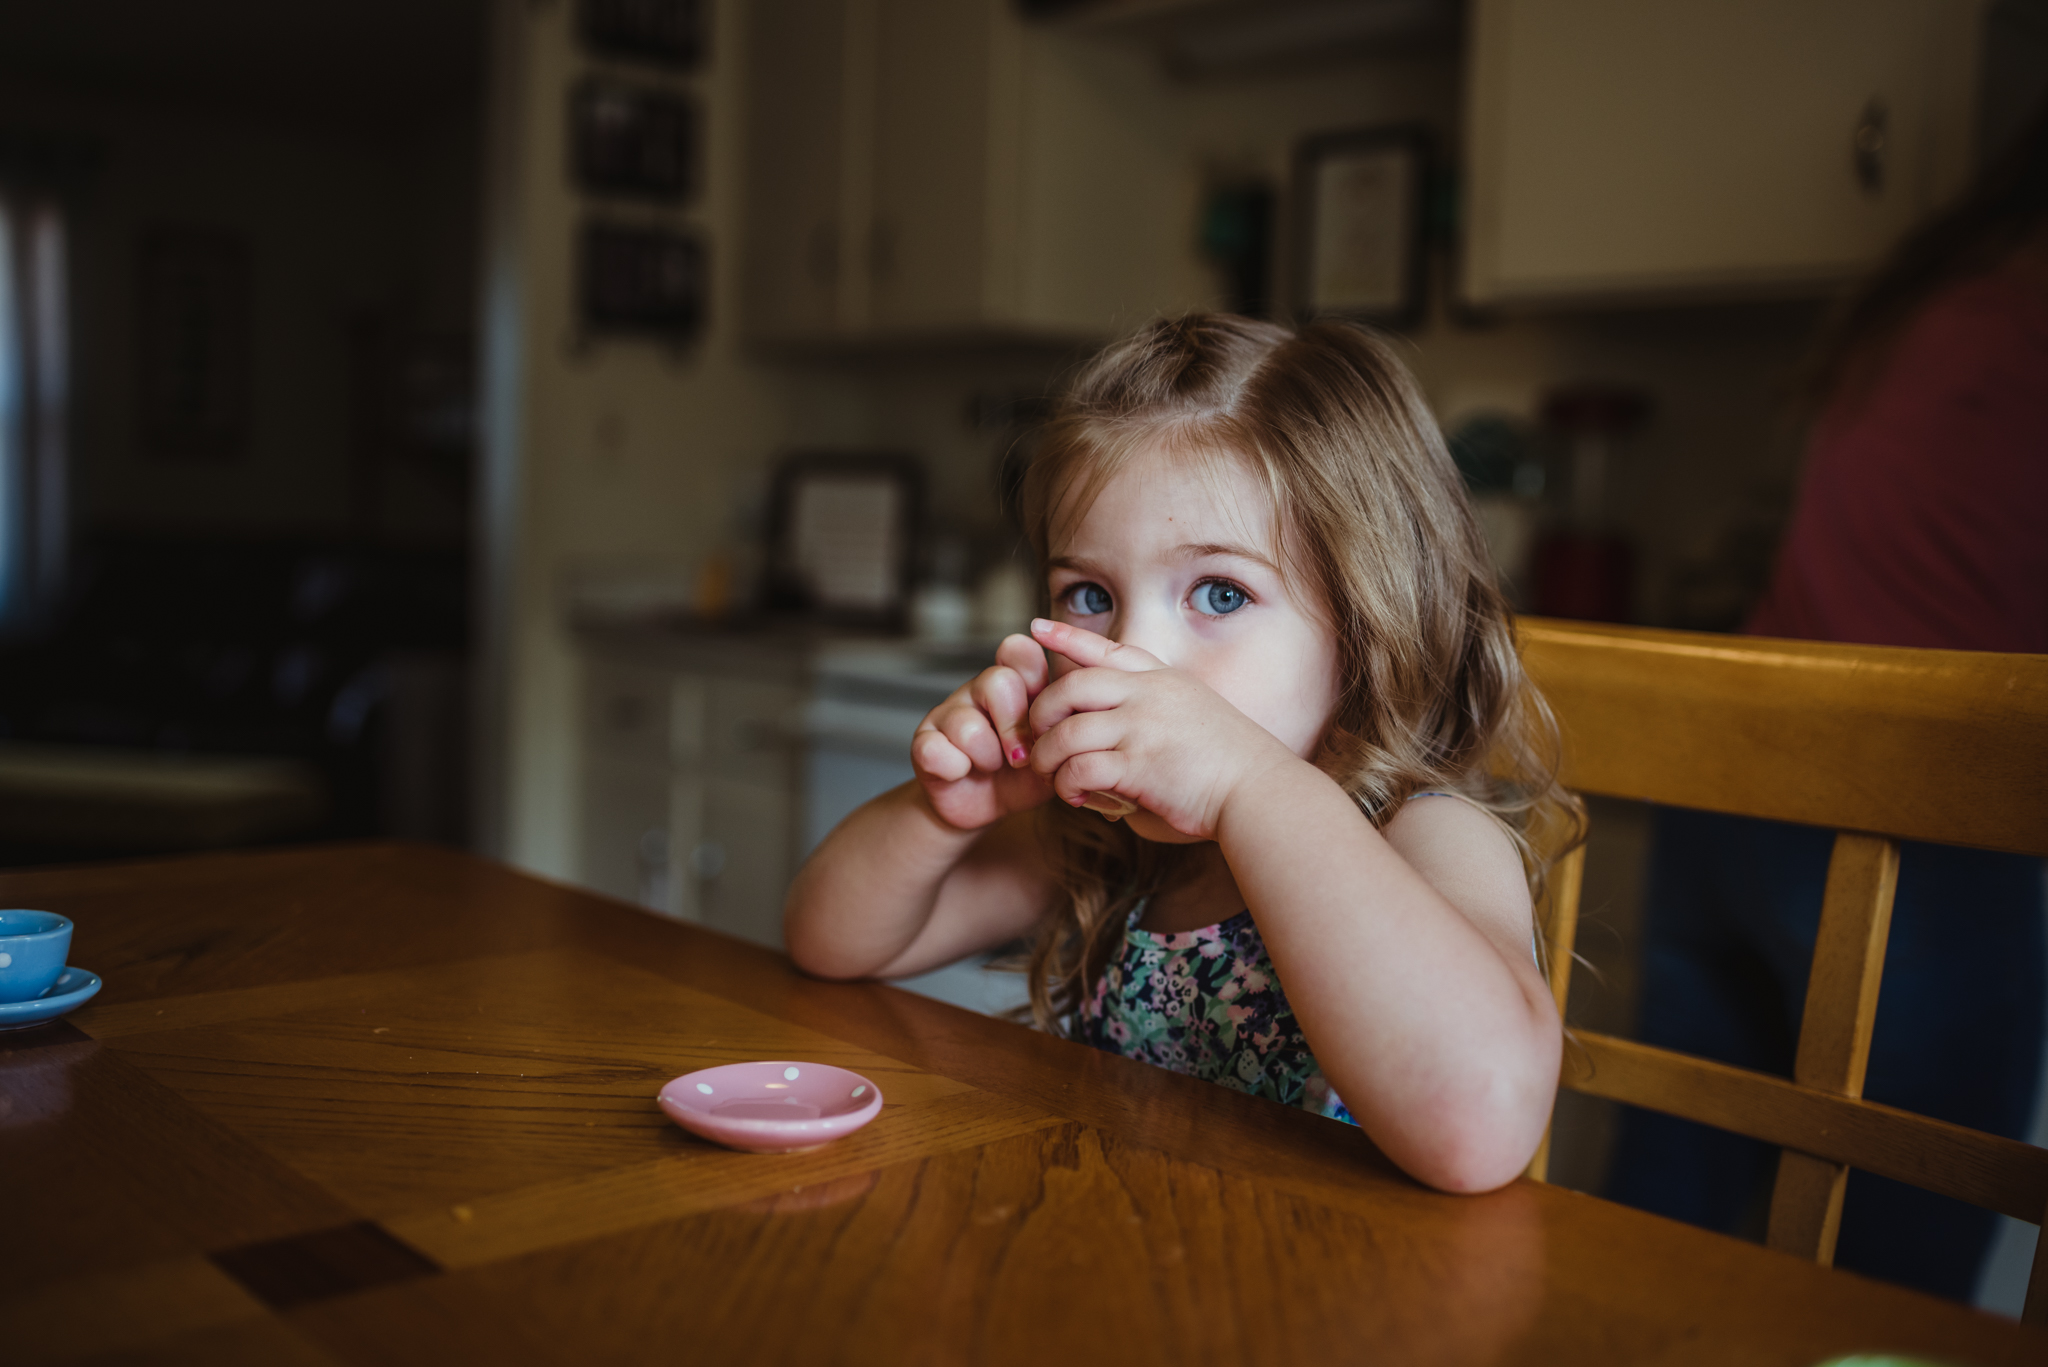 The little girl sips her tea in the kitchen during their lifestyle session at home in Wake Forest with Rose Trail Images.